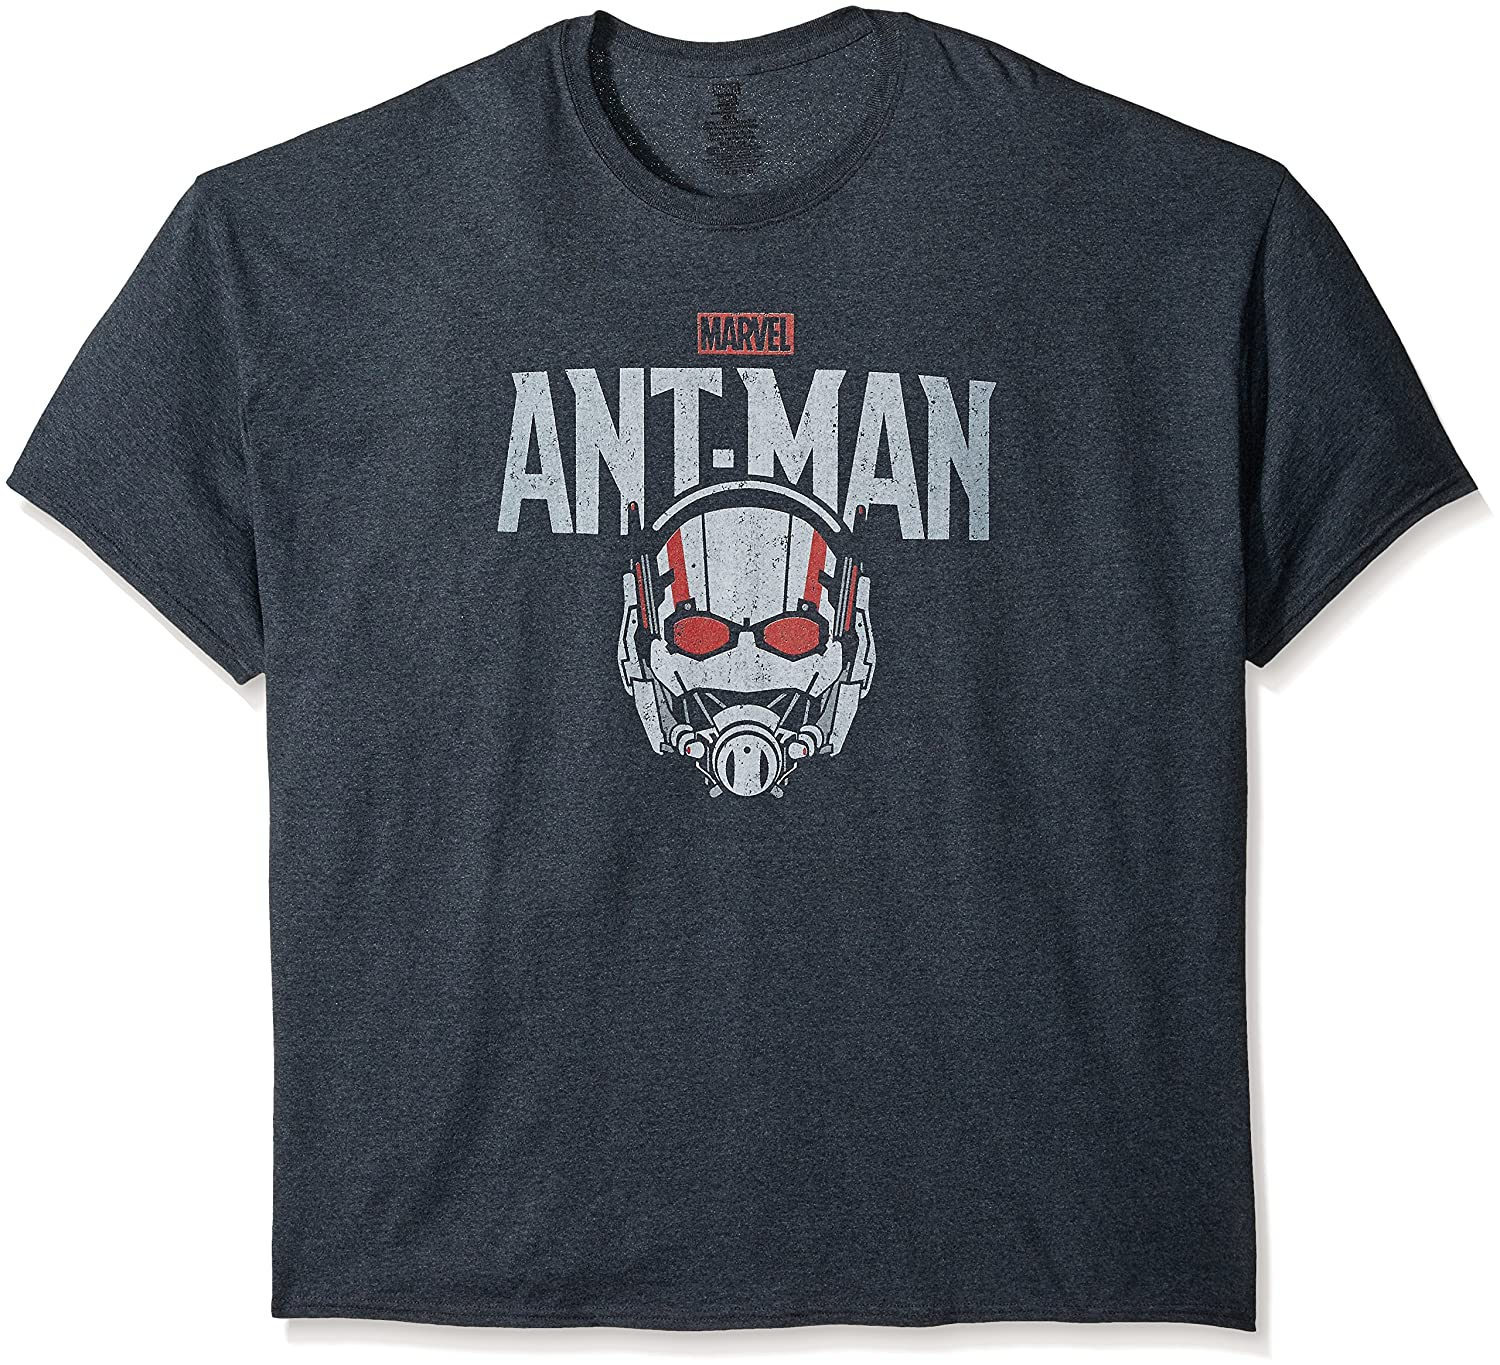 acb0d9c5 Amazon.com: Marvel Men's Ant-Man Logo T-Shirt: Clothing